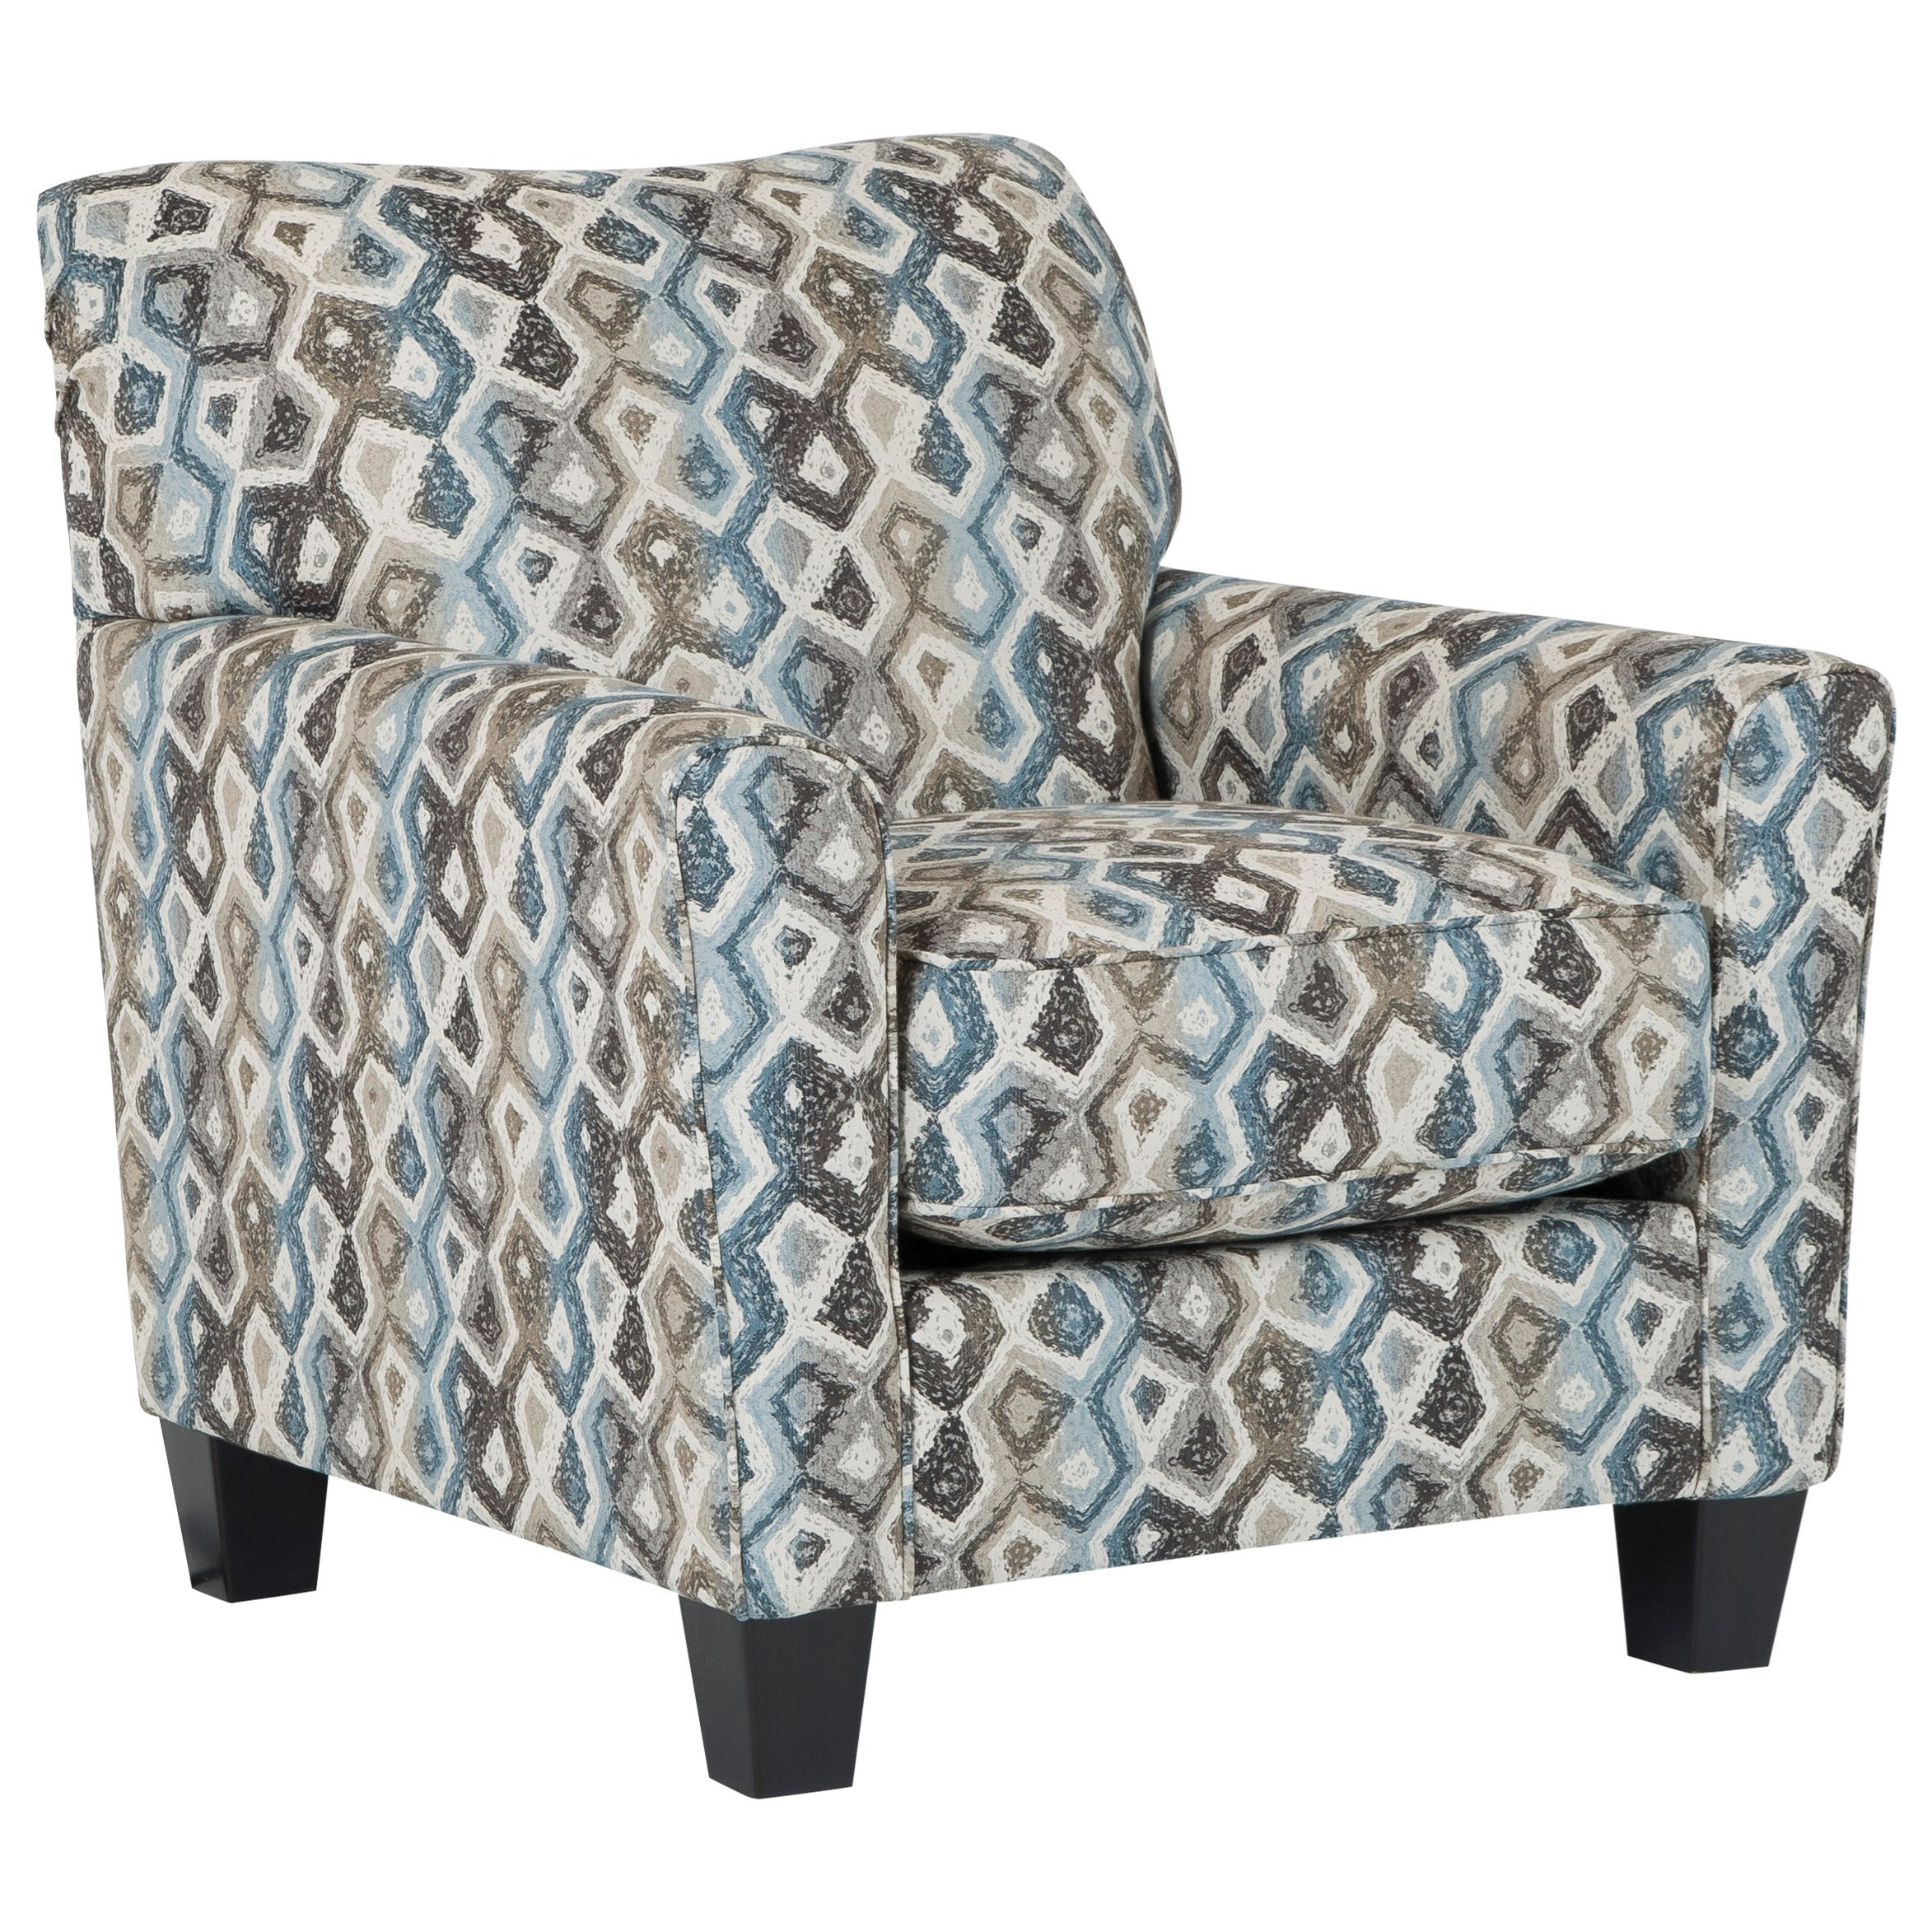 Signature Design by Ashley Nalini Accent Chair - Item Number: 611XX21